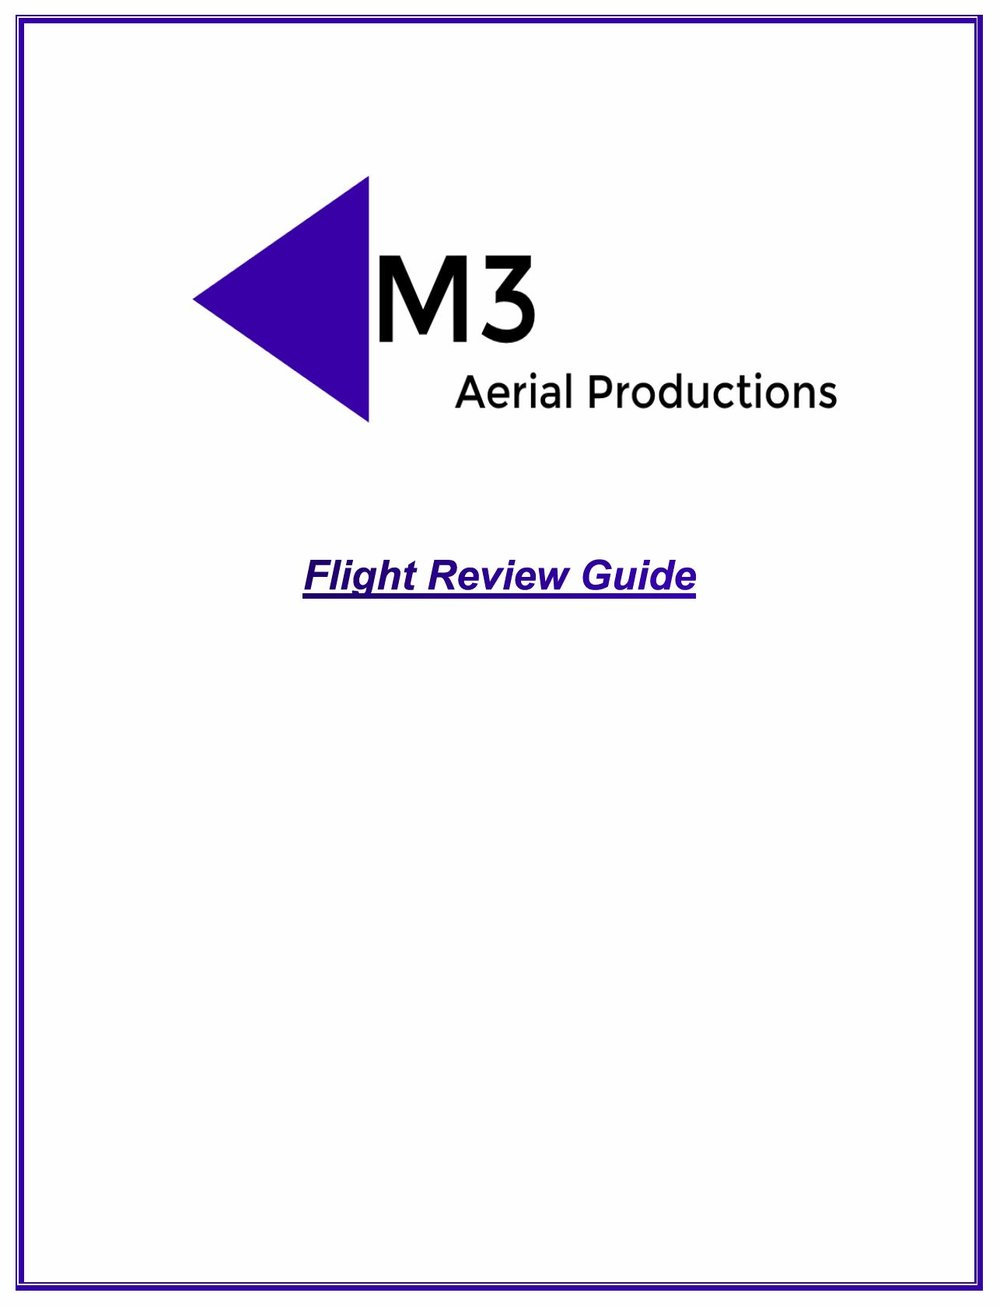 Click the image to download the Flight Review Guide.